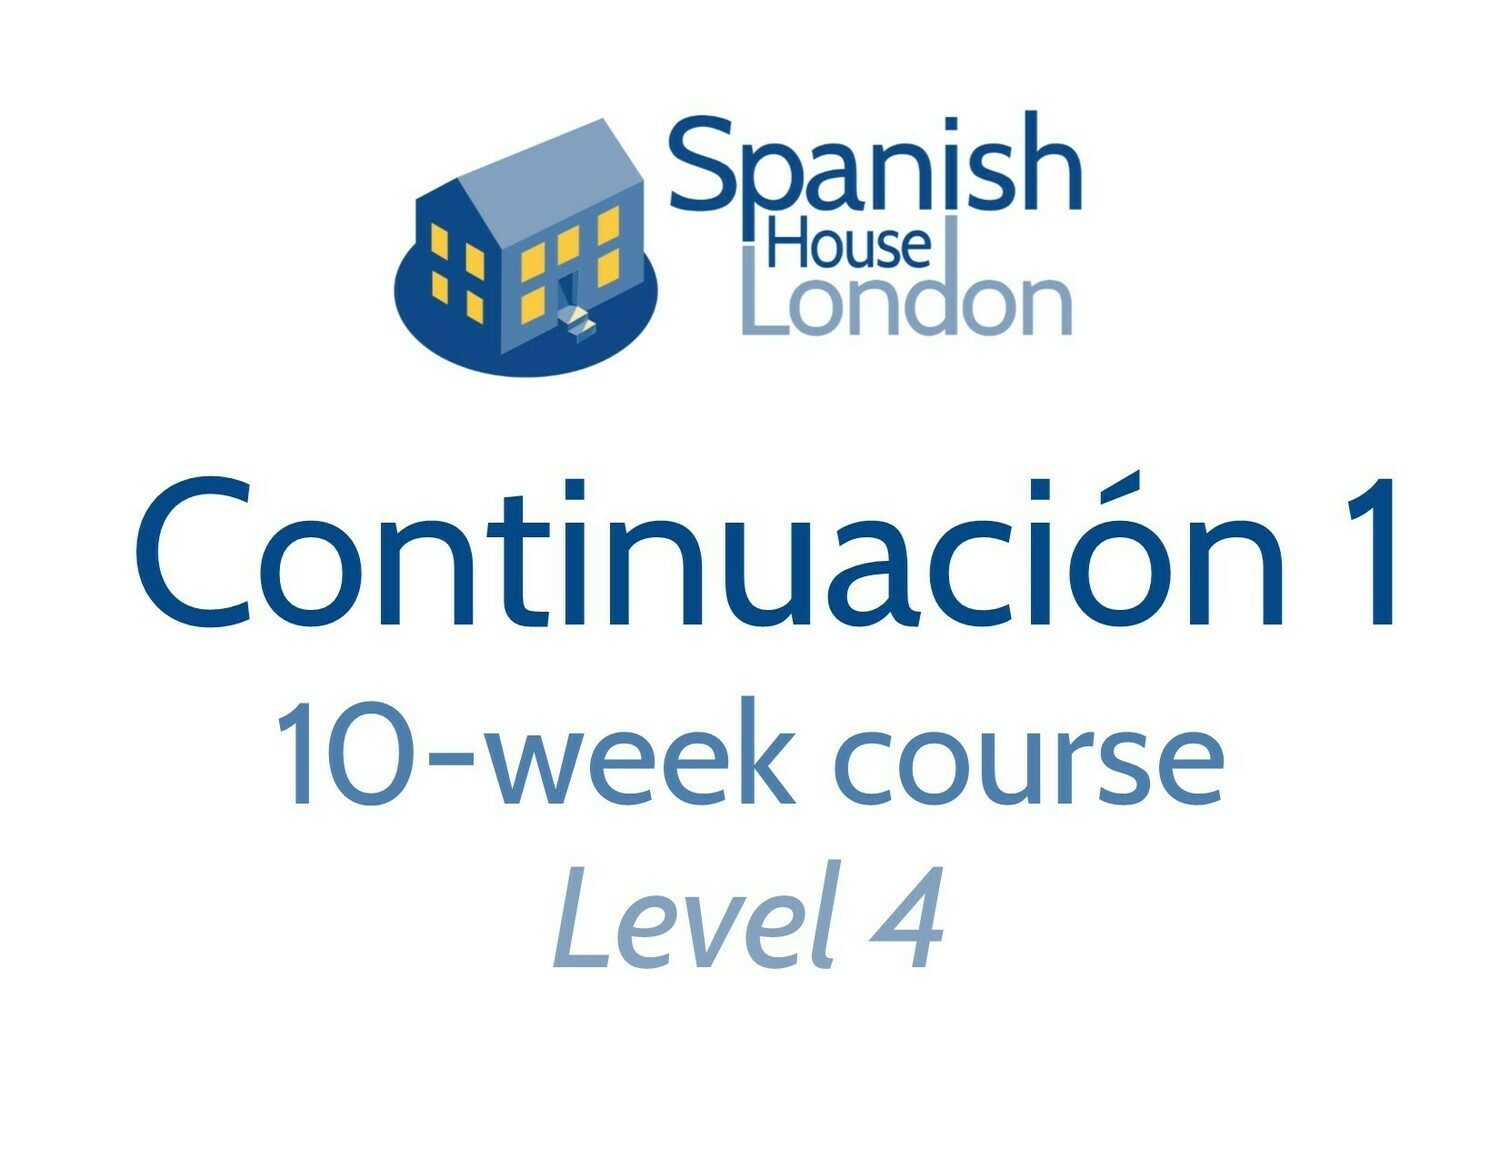 Continuacion 1 Course starting on 23rd March at 7.30pm